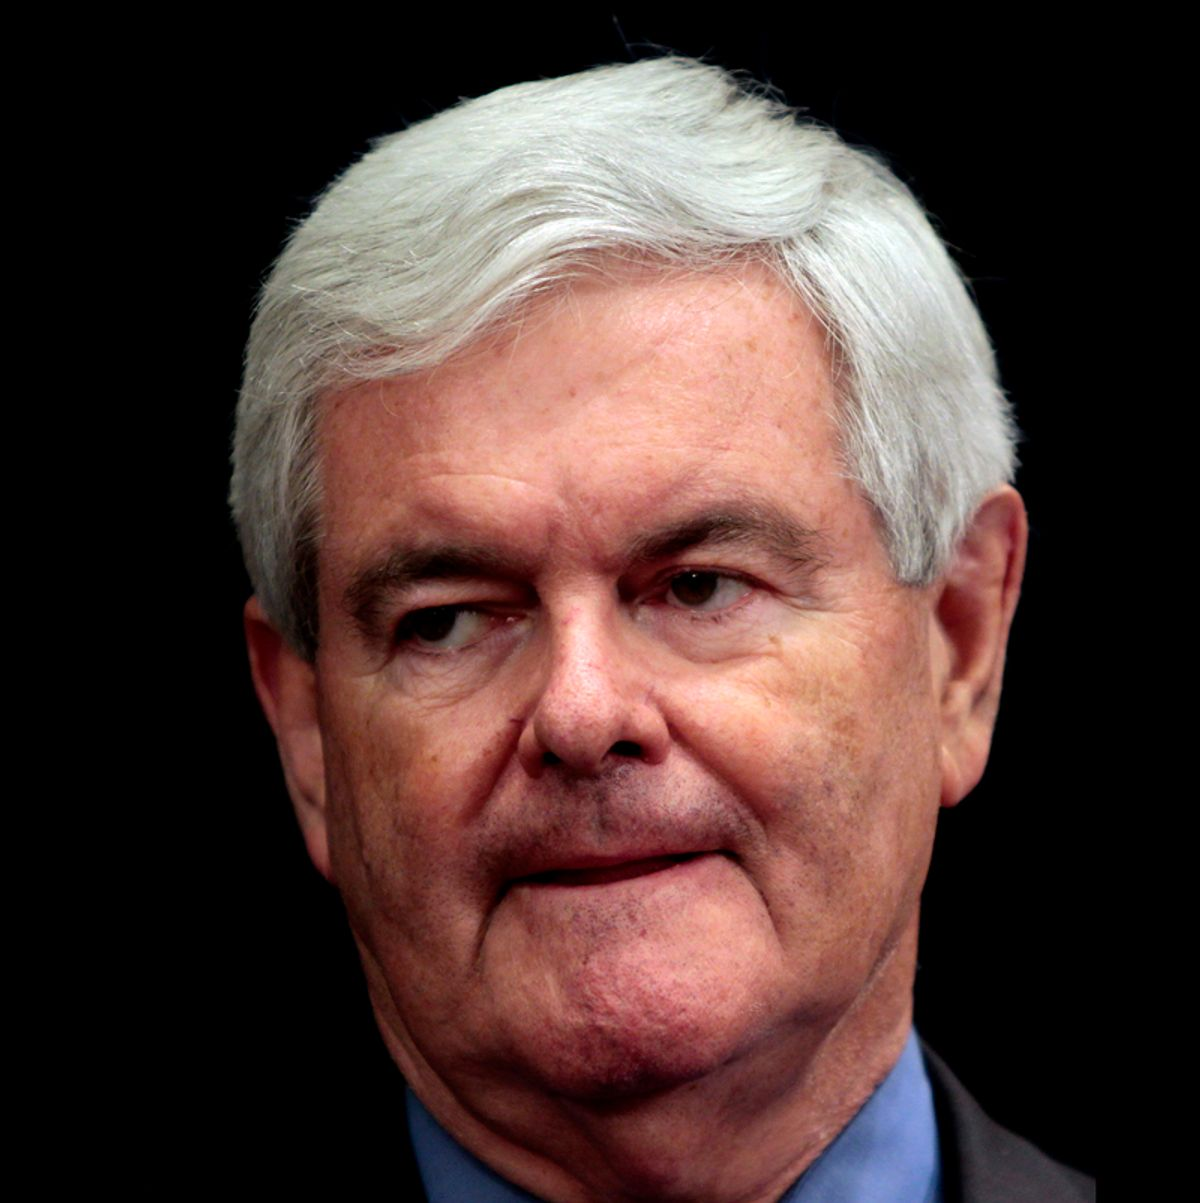 Former House Speaker Newt Gingrich, R-Ga., speaks during a news conference in the Governor's office Thursday March 3, 2011 in Atlanta.  Gingrich said he is launching a website to explore a run for president.(AP Photo/John Bazemore) (John Bazemore)